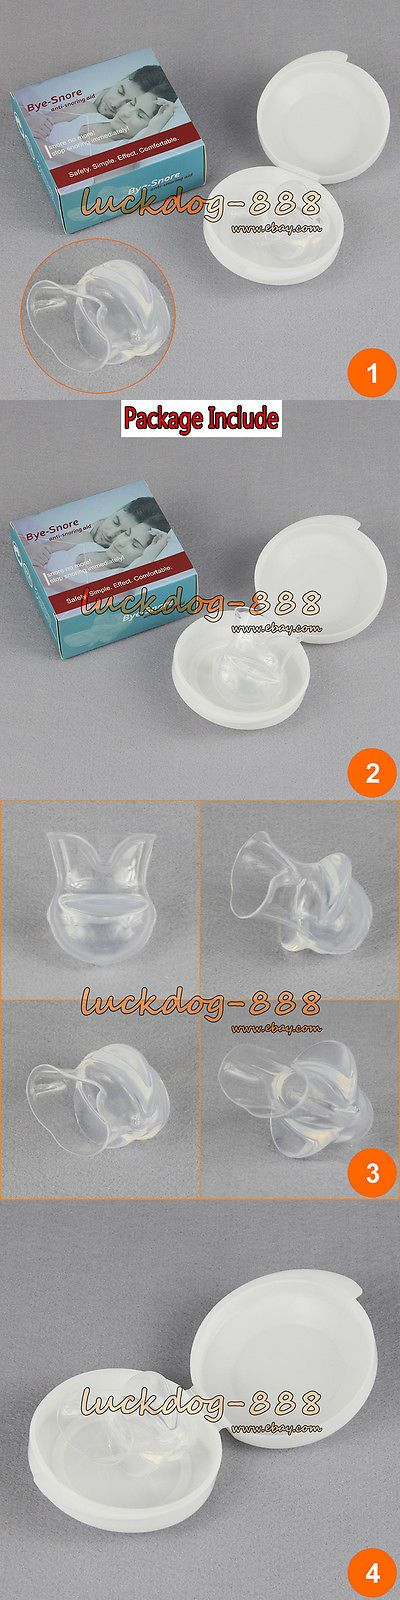 Mouthpieces: Anti Snore Tsd Revolutionary Stop Snoring And Sleep Apnea Mouthpiece Tongue Guard -> BUY IT NOW ONLY: $30.9 on eBay!